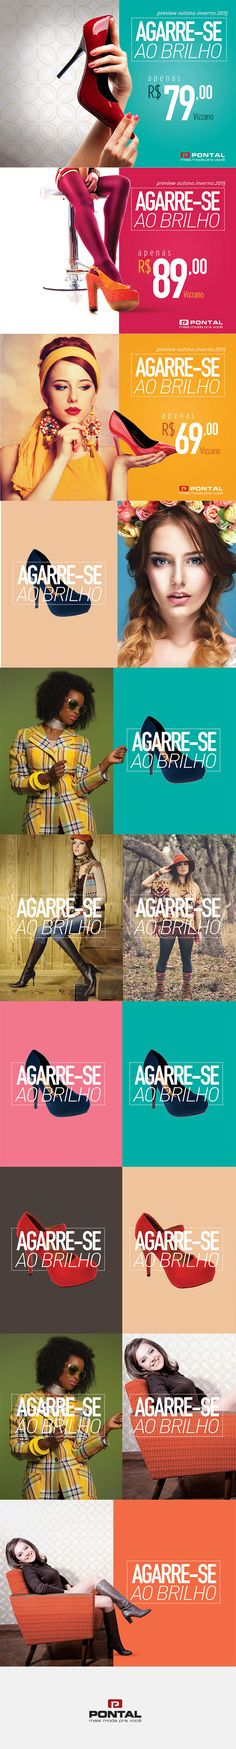 Agarre-se ao Brilho - Pontal on Behance